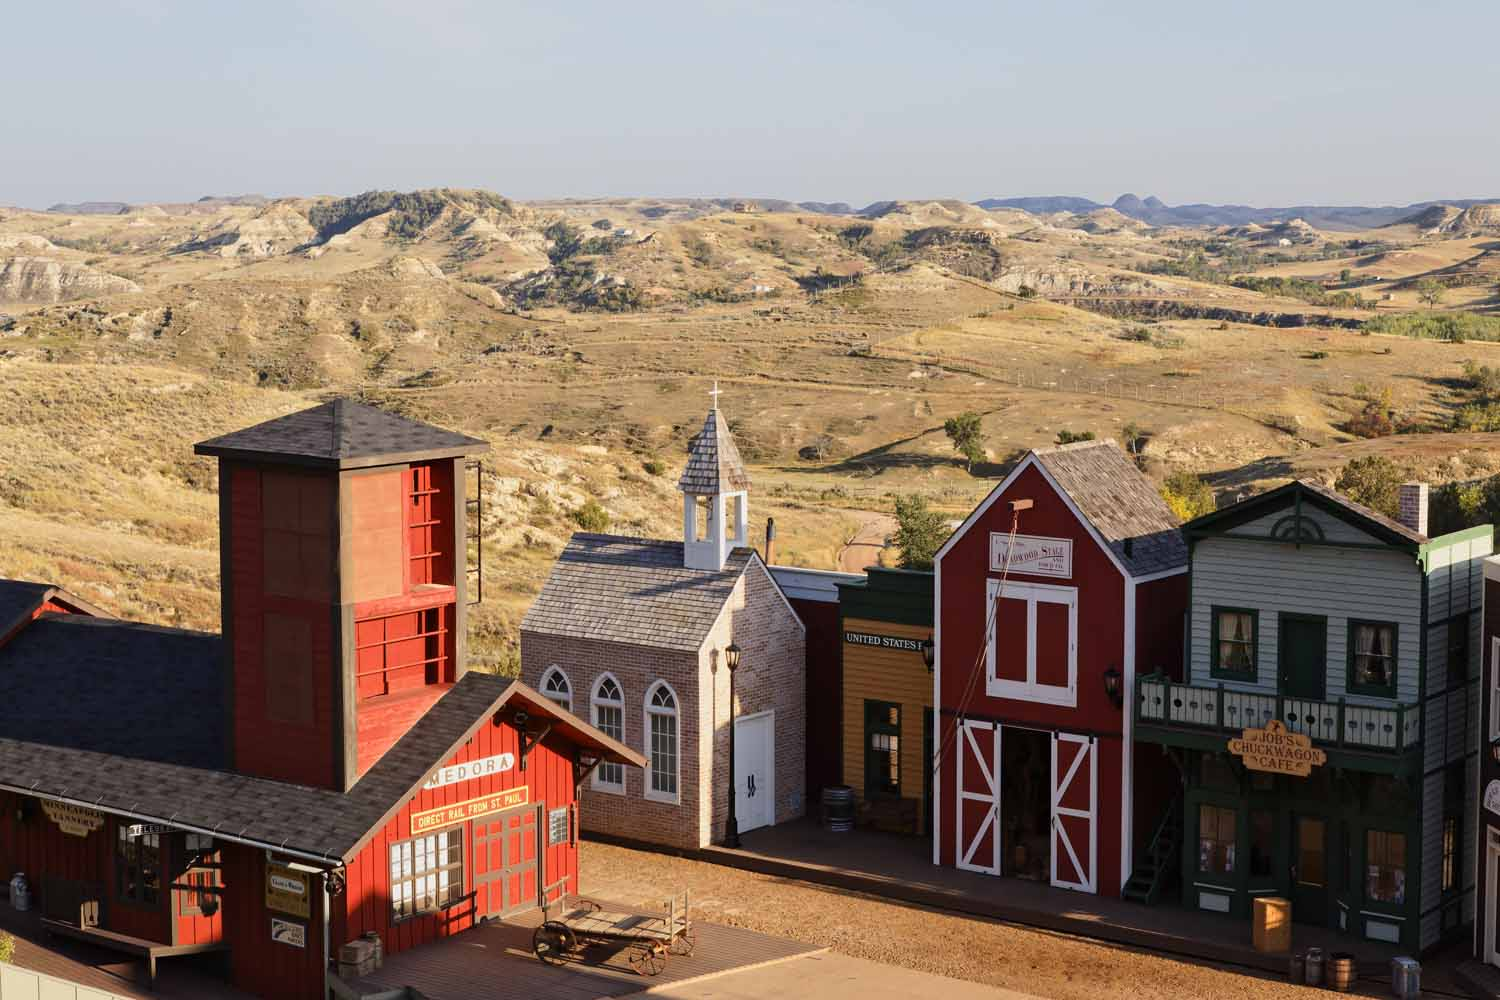 10 Tiny Towns with Big Tourism Dreams